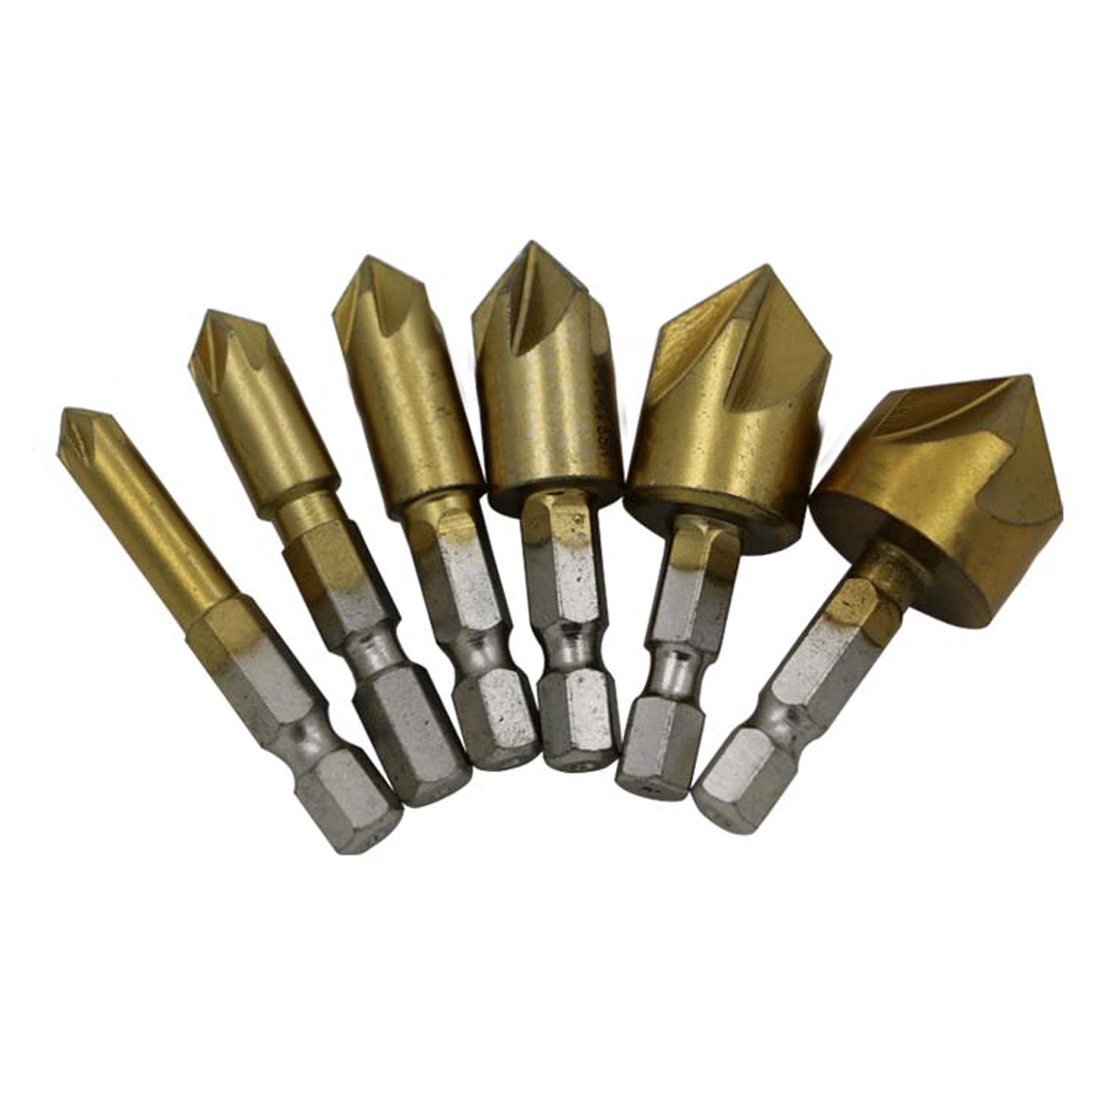 5 Flute Chamfer Countersink 6PCS 6mm-19mm Countersink Drill Bit 1/4 Hex Shank 90 Degree Wood Chamfering Cutter drill guide round shank 6pcs 3 flute 90 degree hss chamfer chamfering cutter end mill tool countersink drill bit set 6 3 20 5mm